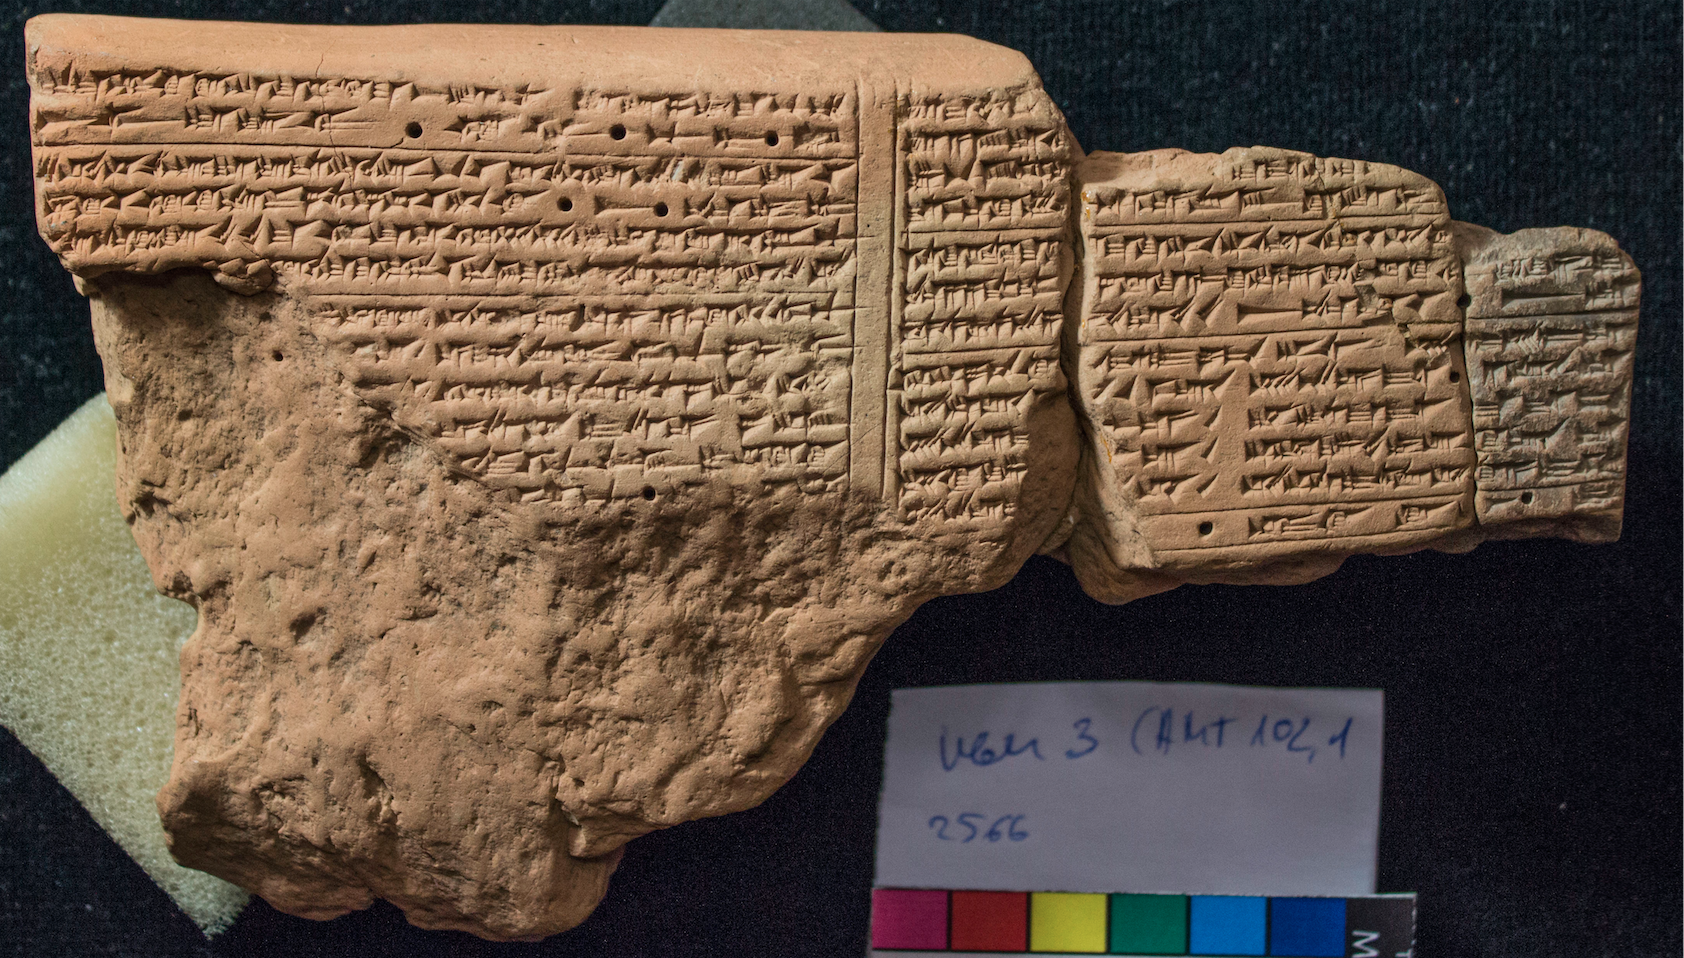 Fig. 1, K 2566 +, photo courtesy of the author with the permission of the Trustees of the British Museum.